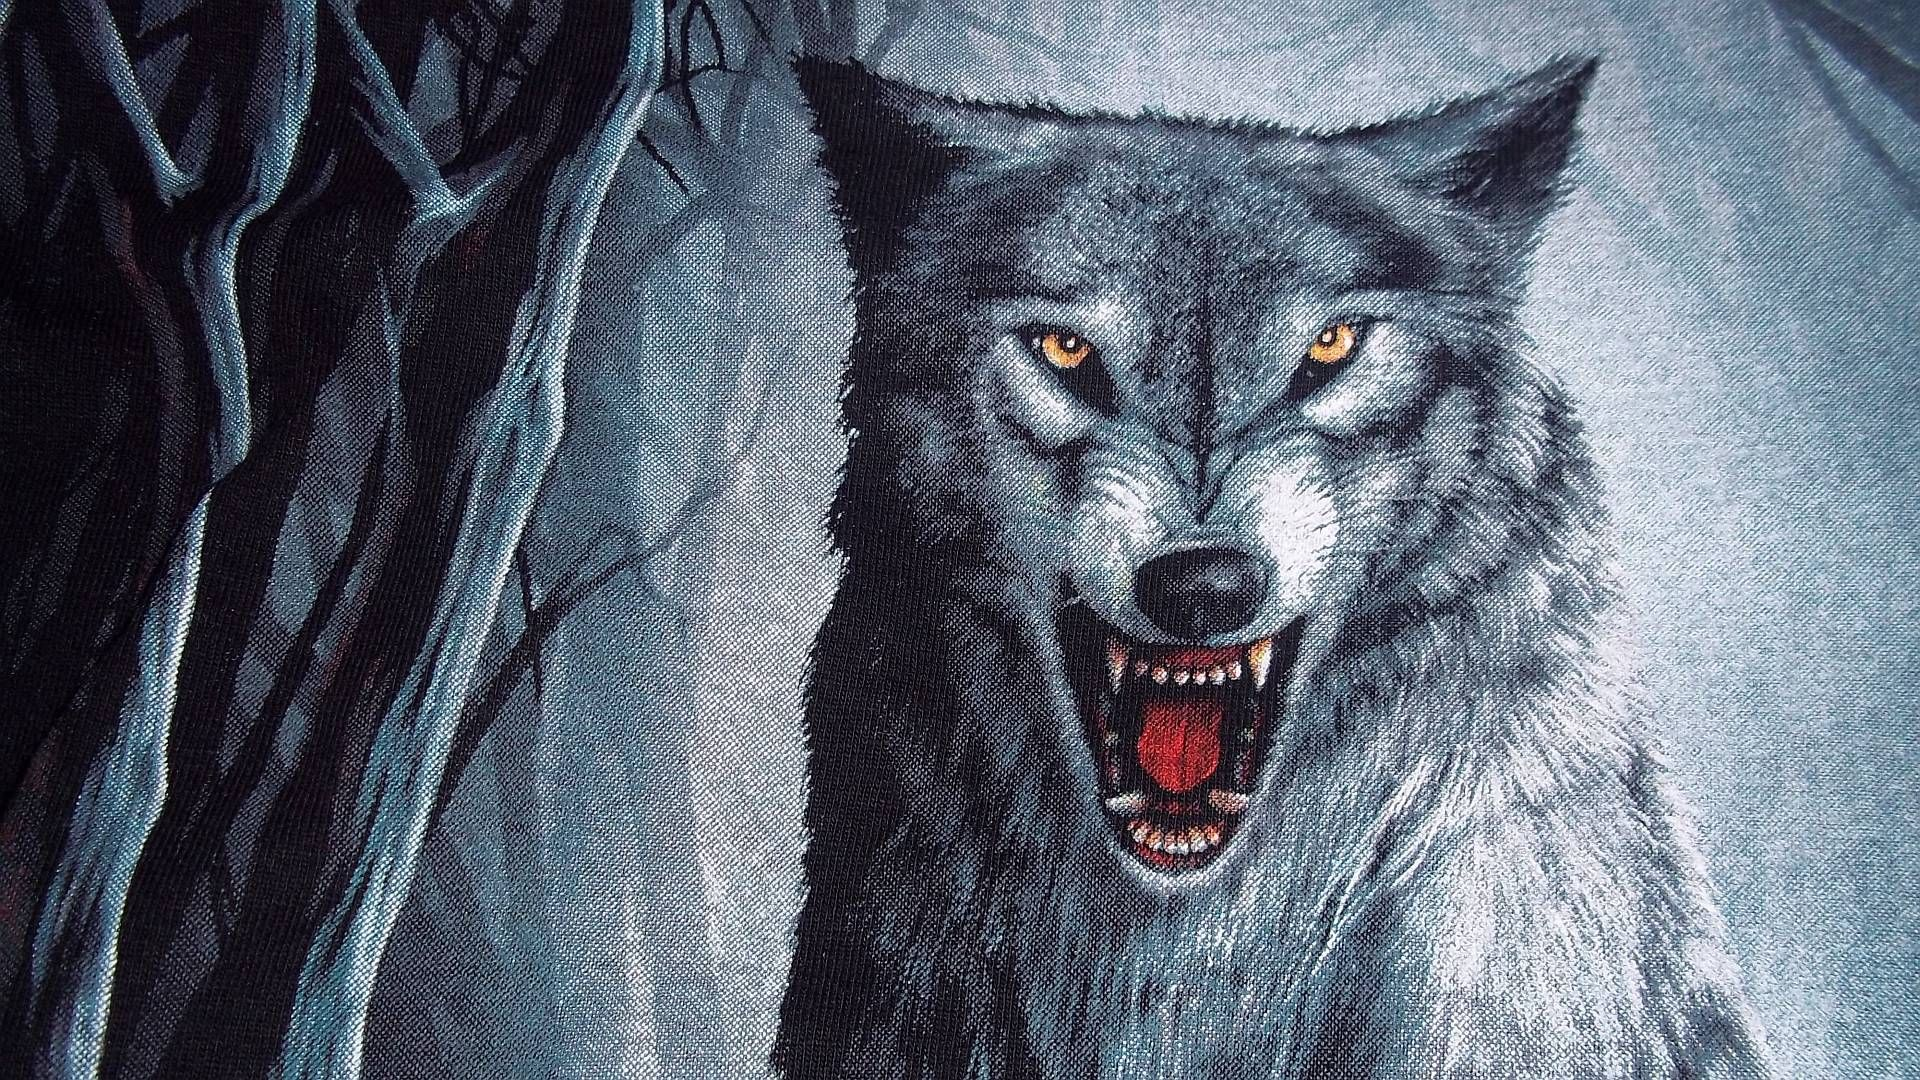 wolf wallpaper free download  Wolf Wallpaper Collection For Free Download | HD Wallpapers ...